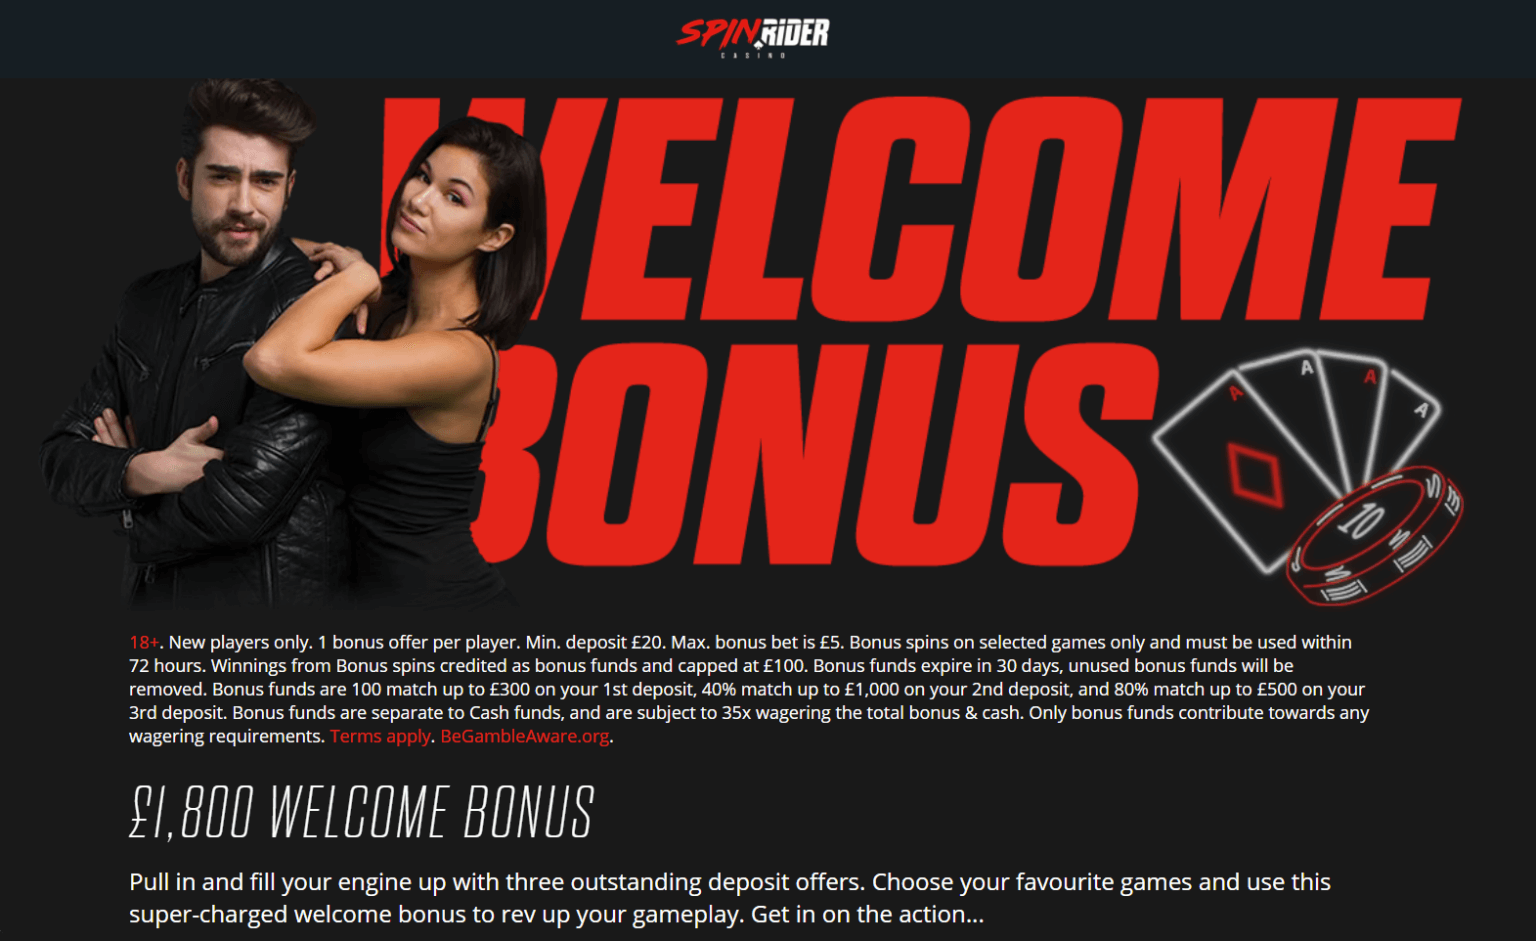 A screenshot of two lovely people in front of the welcome bonus sign